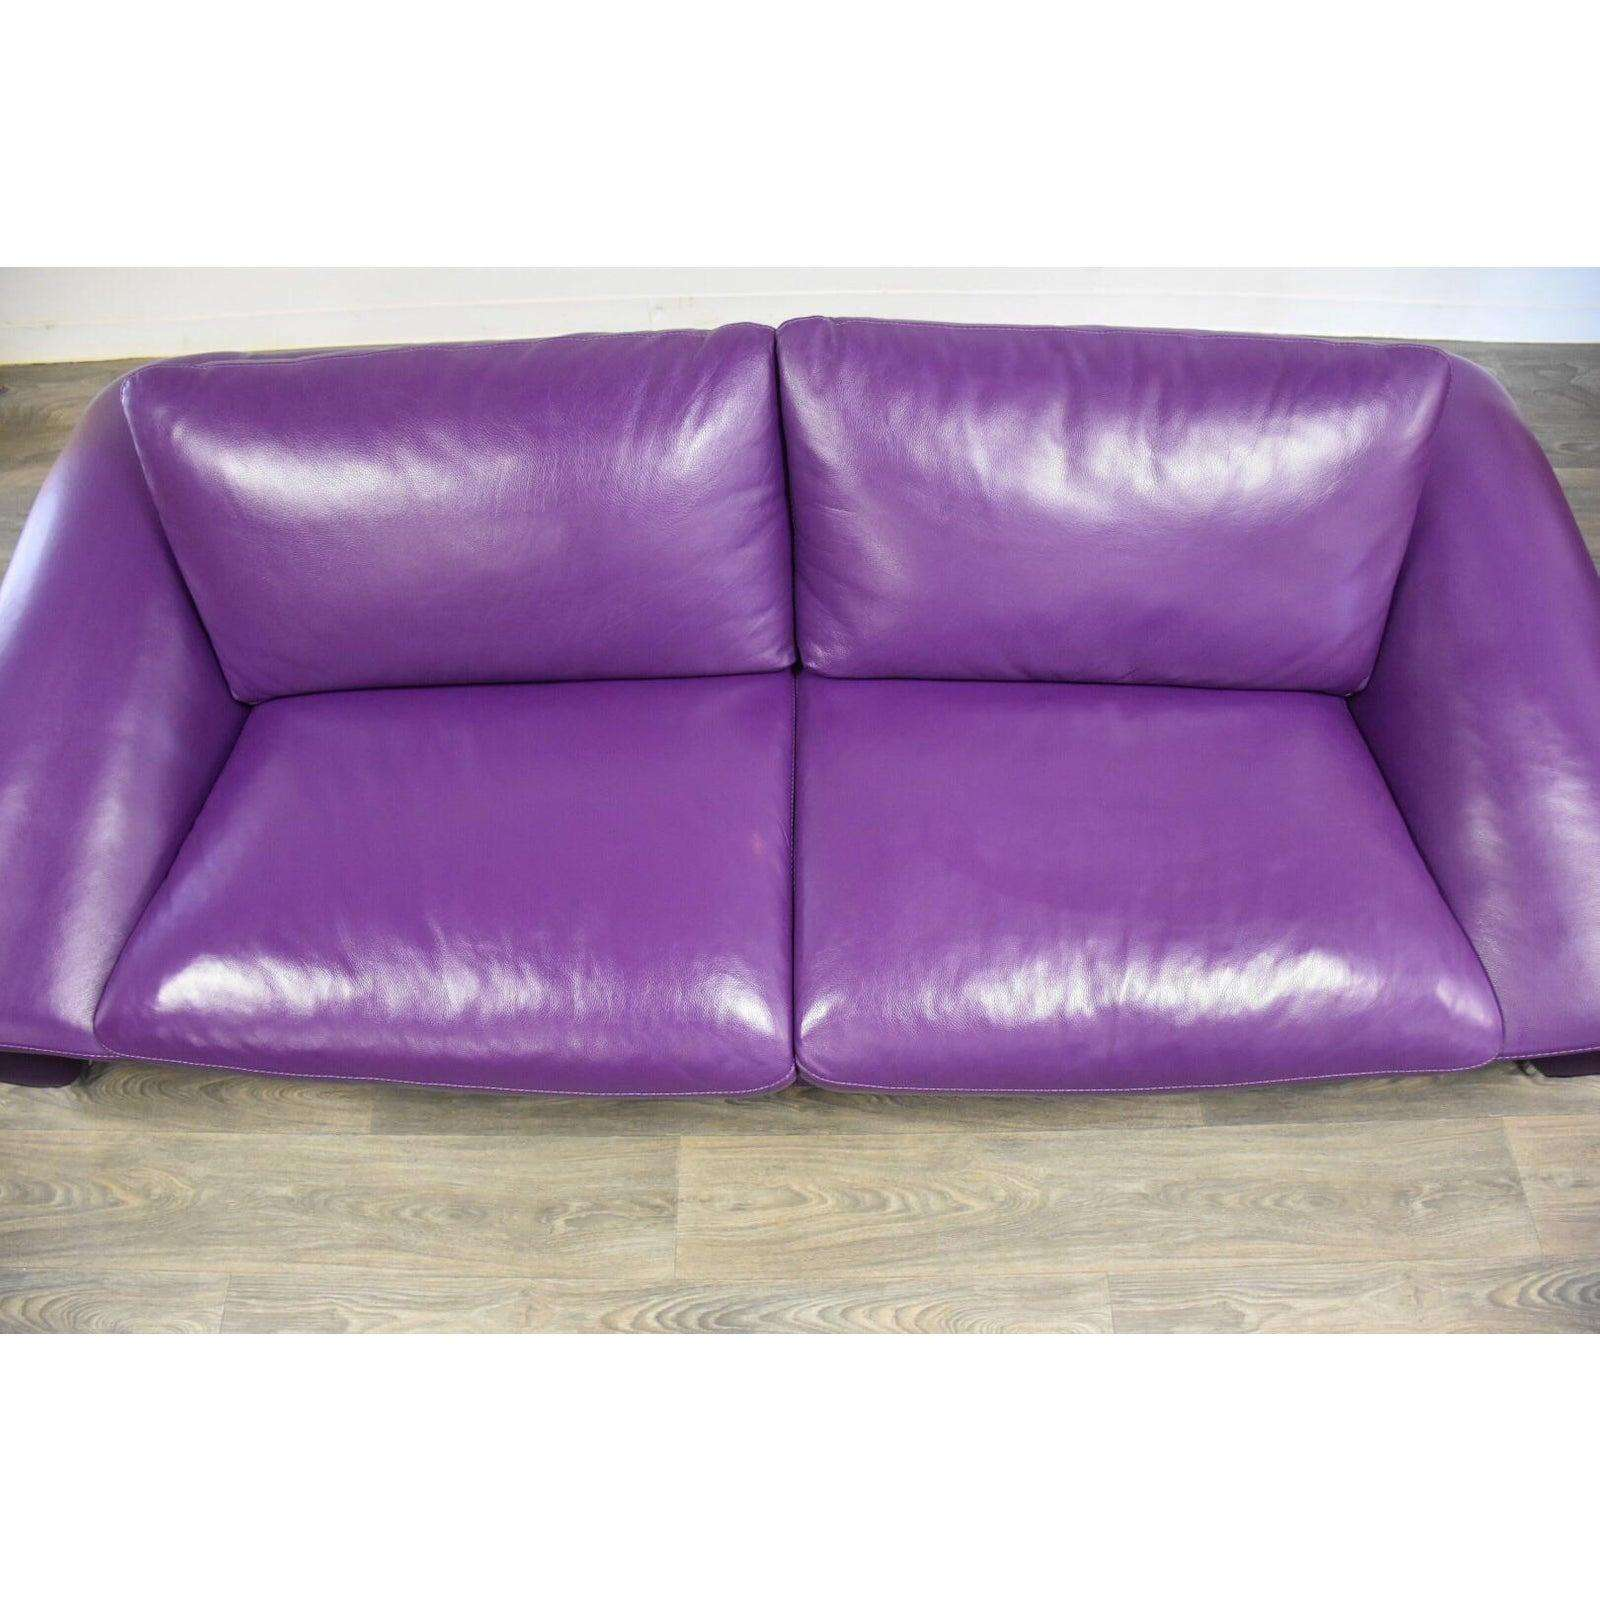 Remarkable Chateau Dax Italian Modern Purple Leather Sofa Theyellowbook Wood Chair Design Ideas Theyellowbookinfo